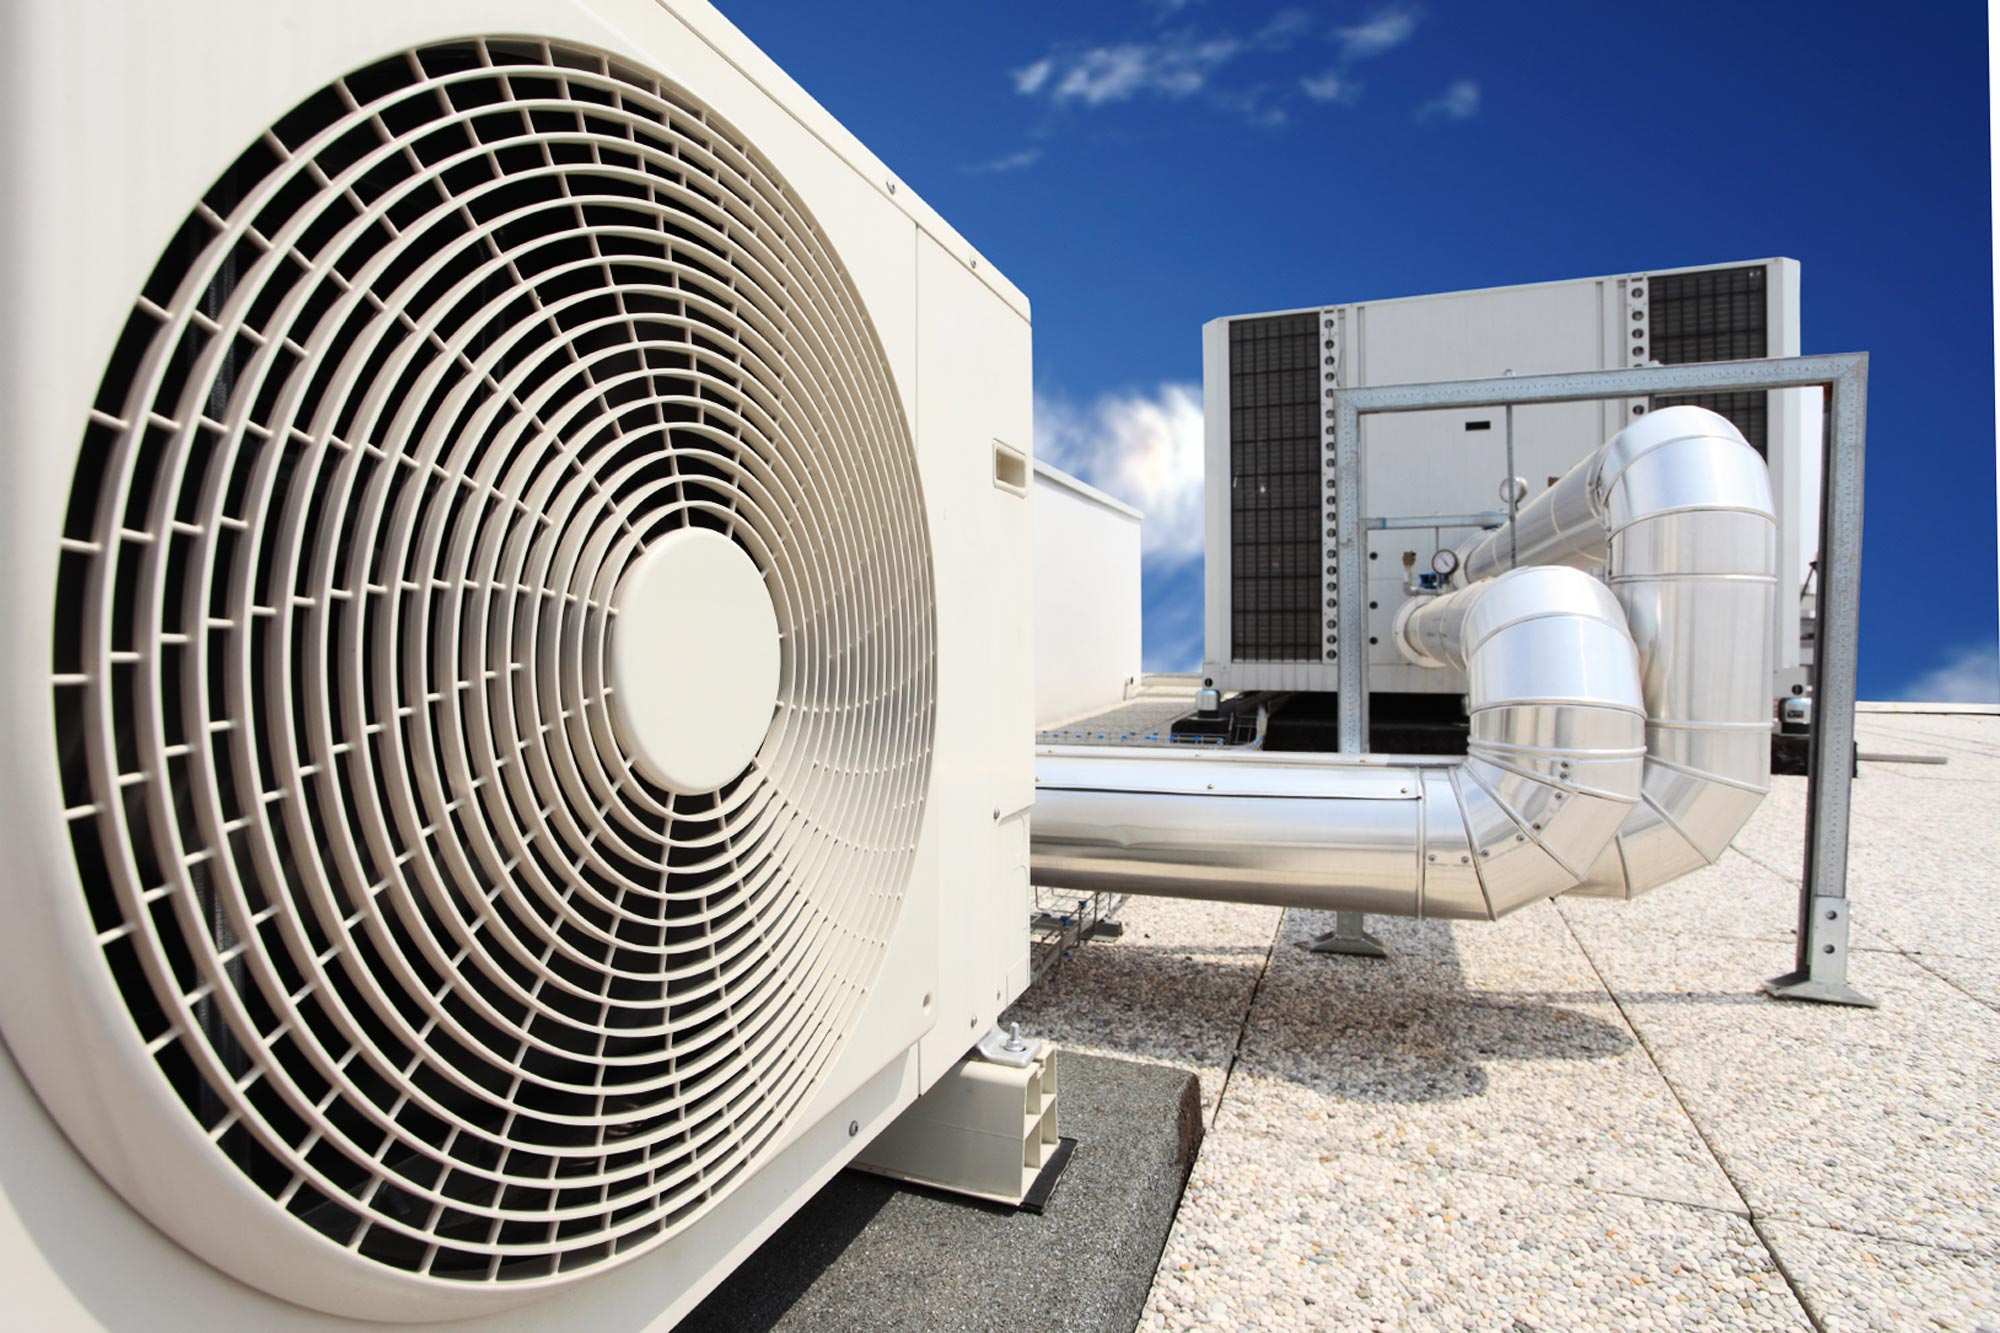 Alpha_Mechanical_Ventilation_commercial-air-conditioning.jpg